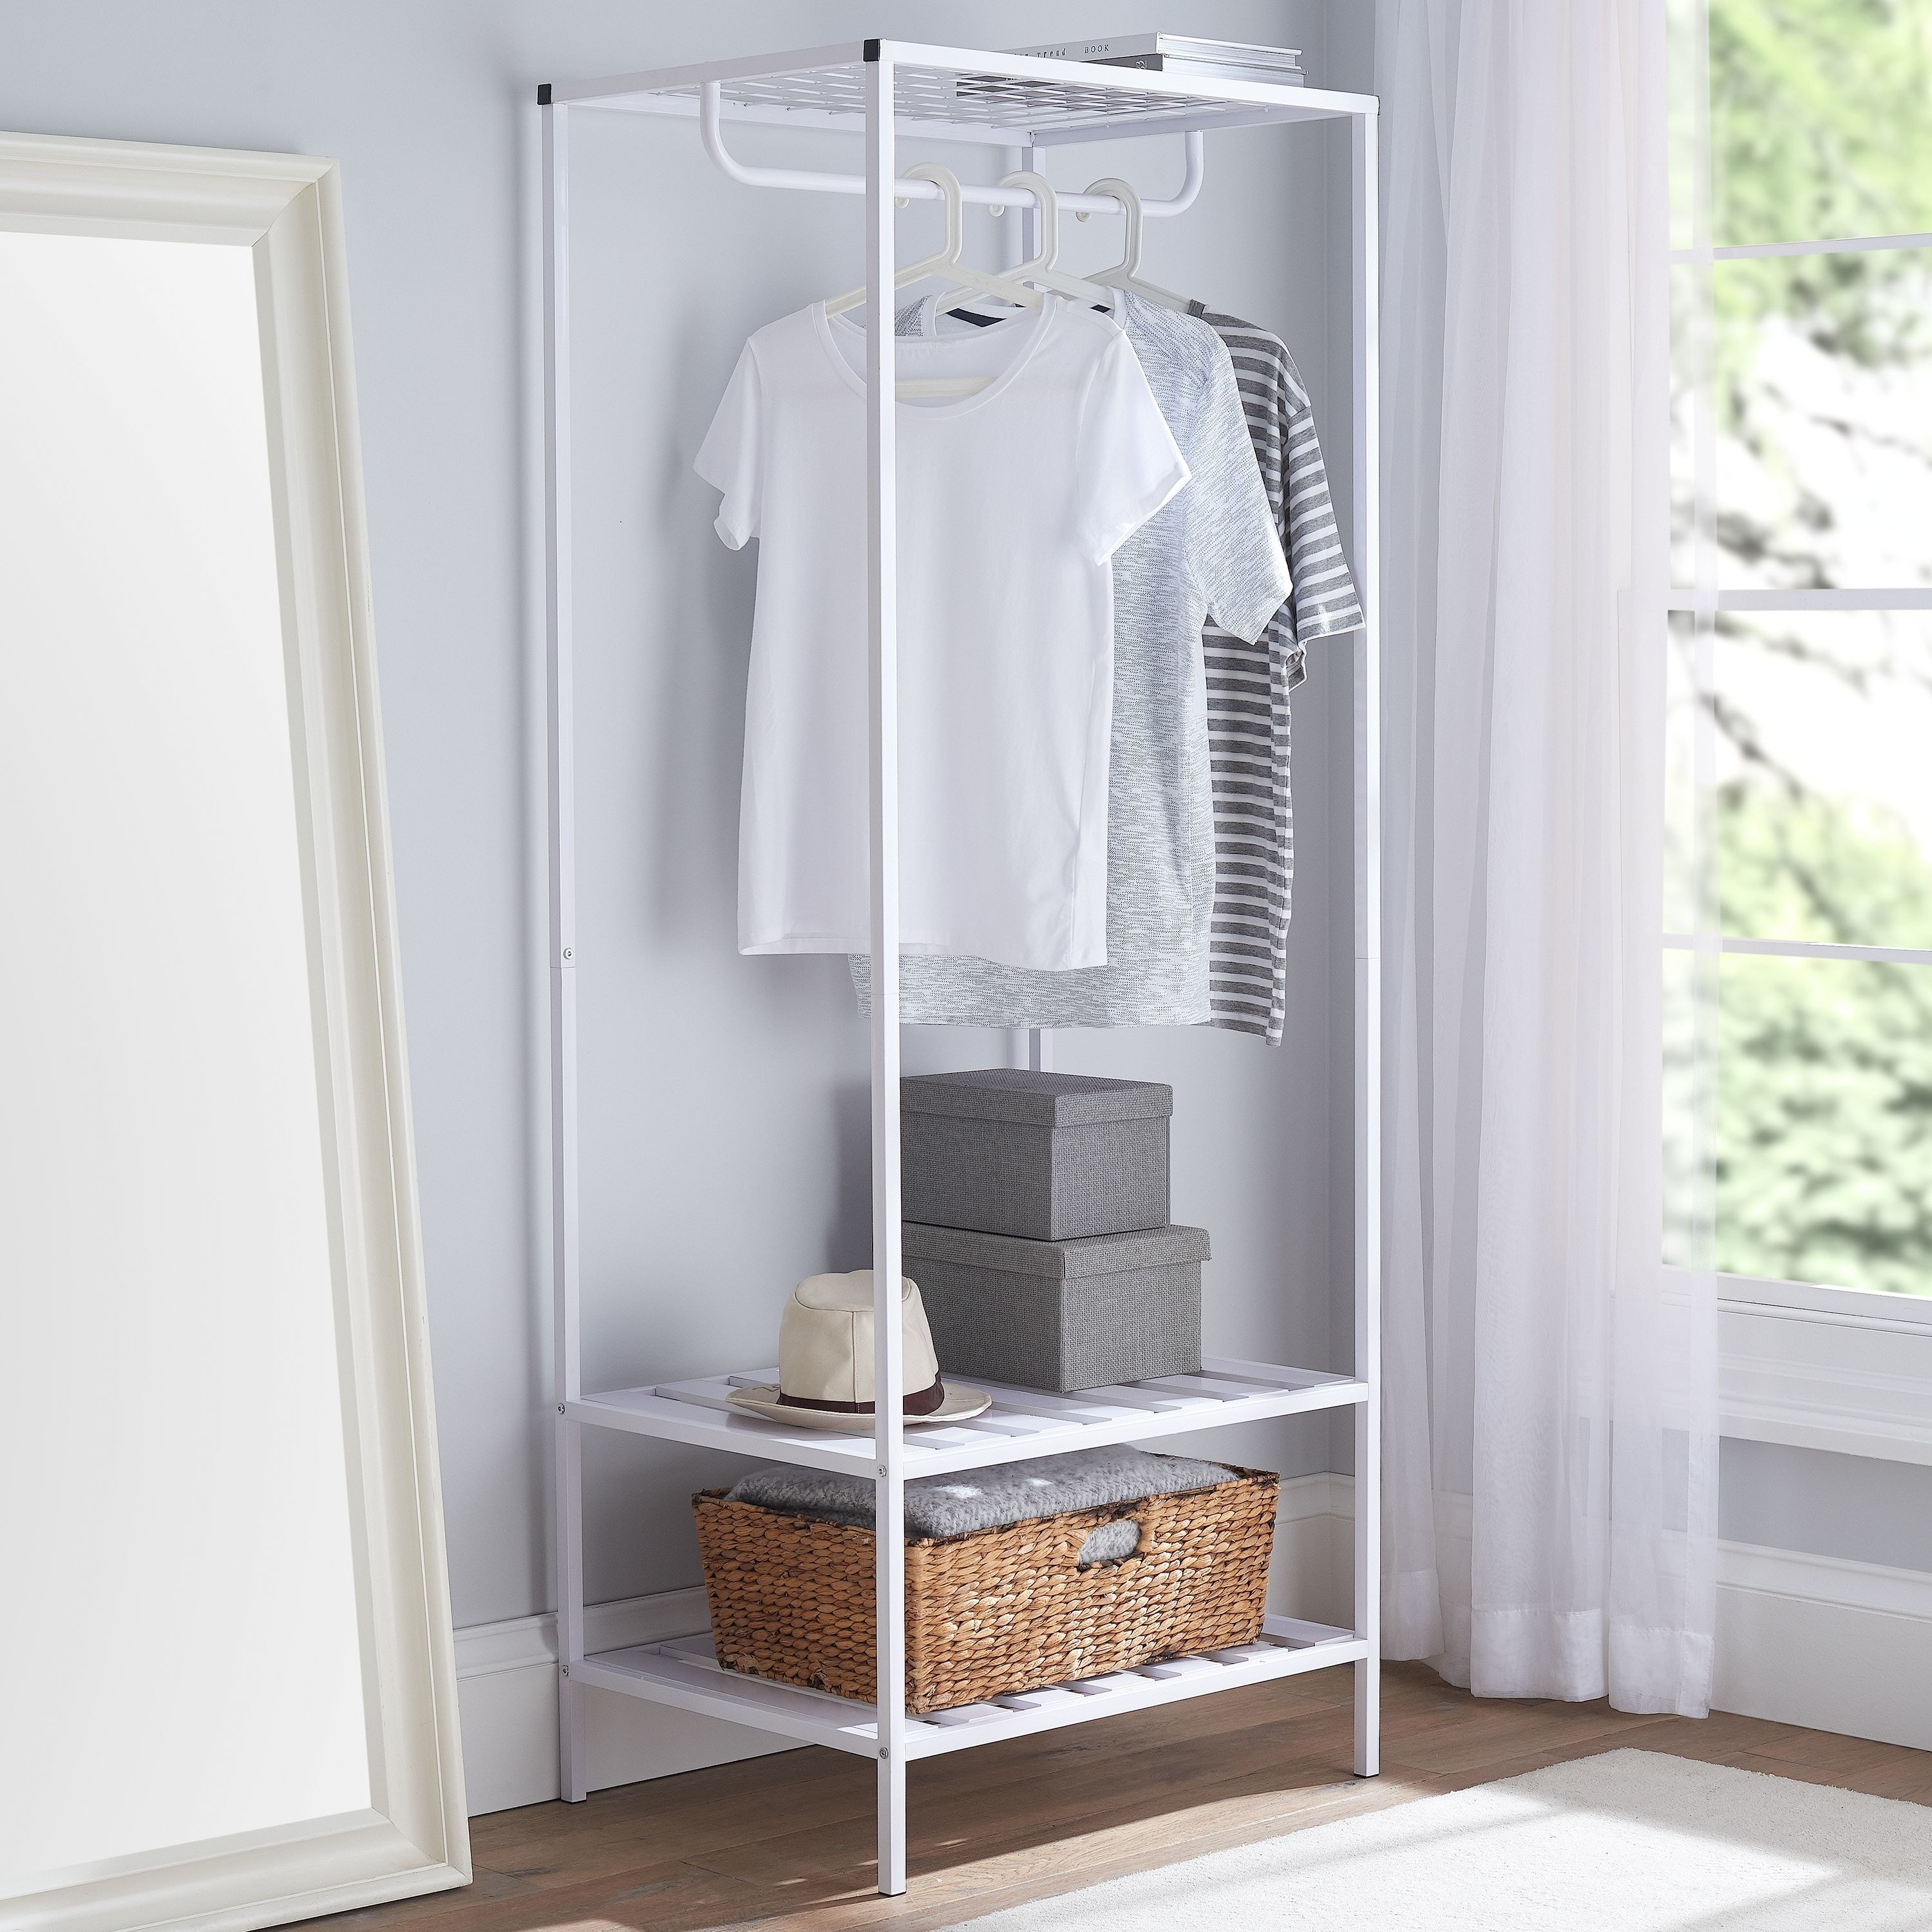 white garment rack with clothes hanging up and boxes on the bottom